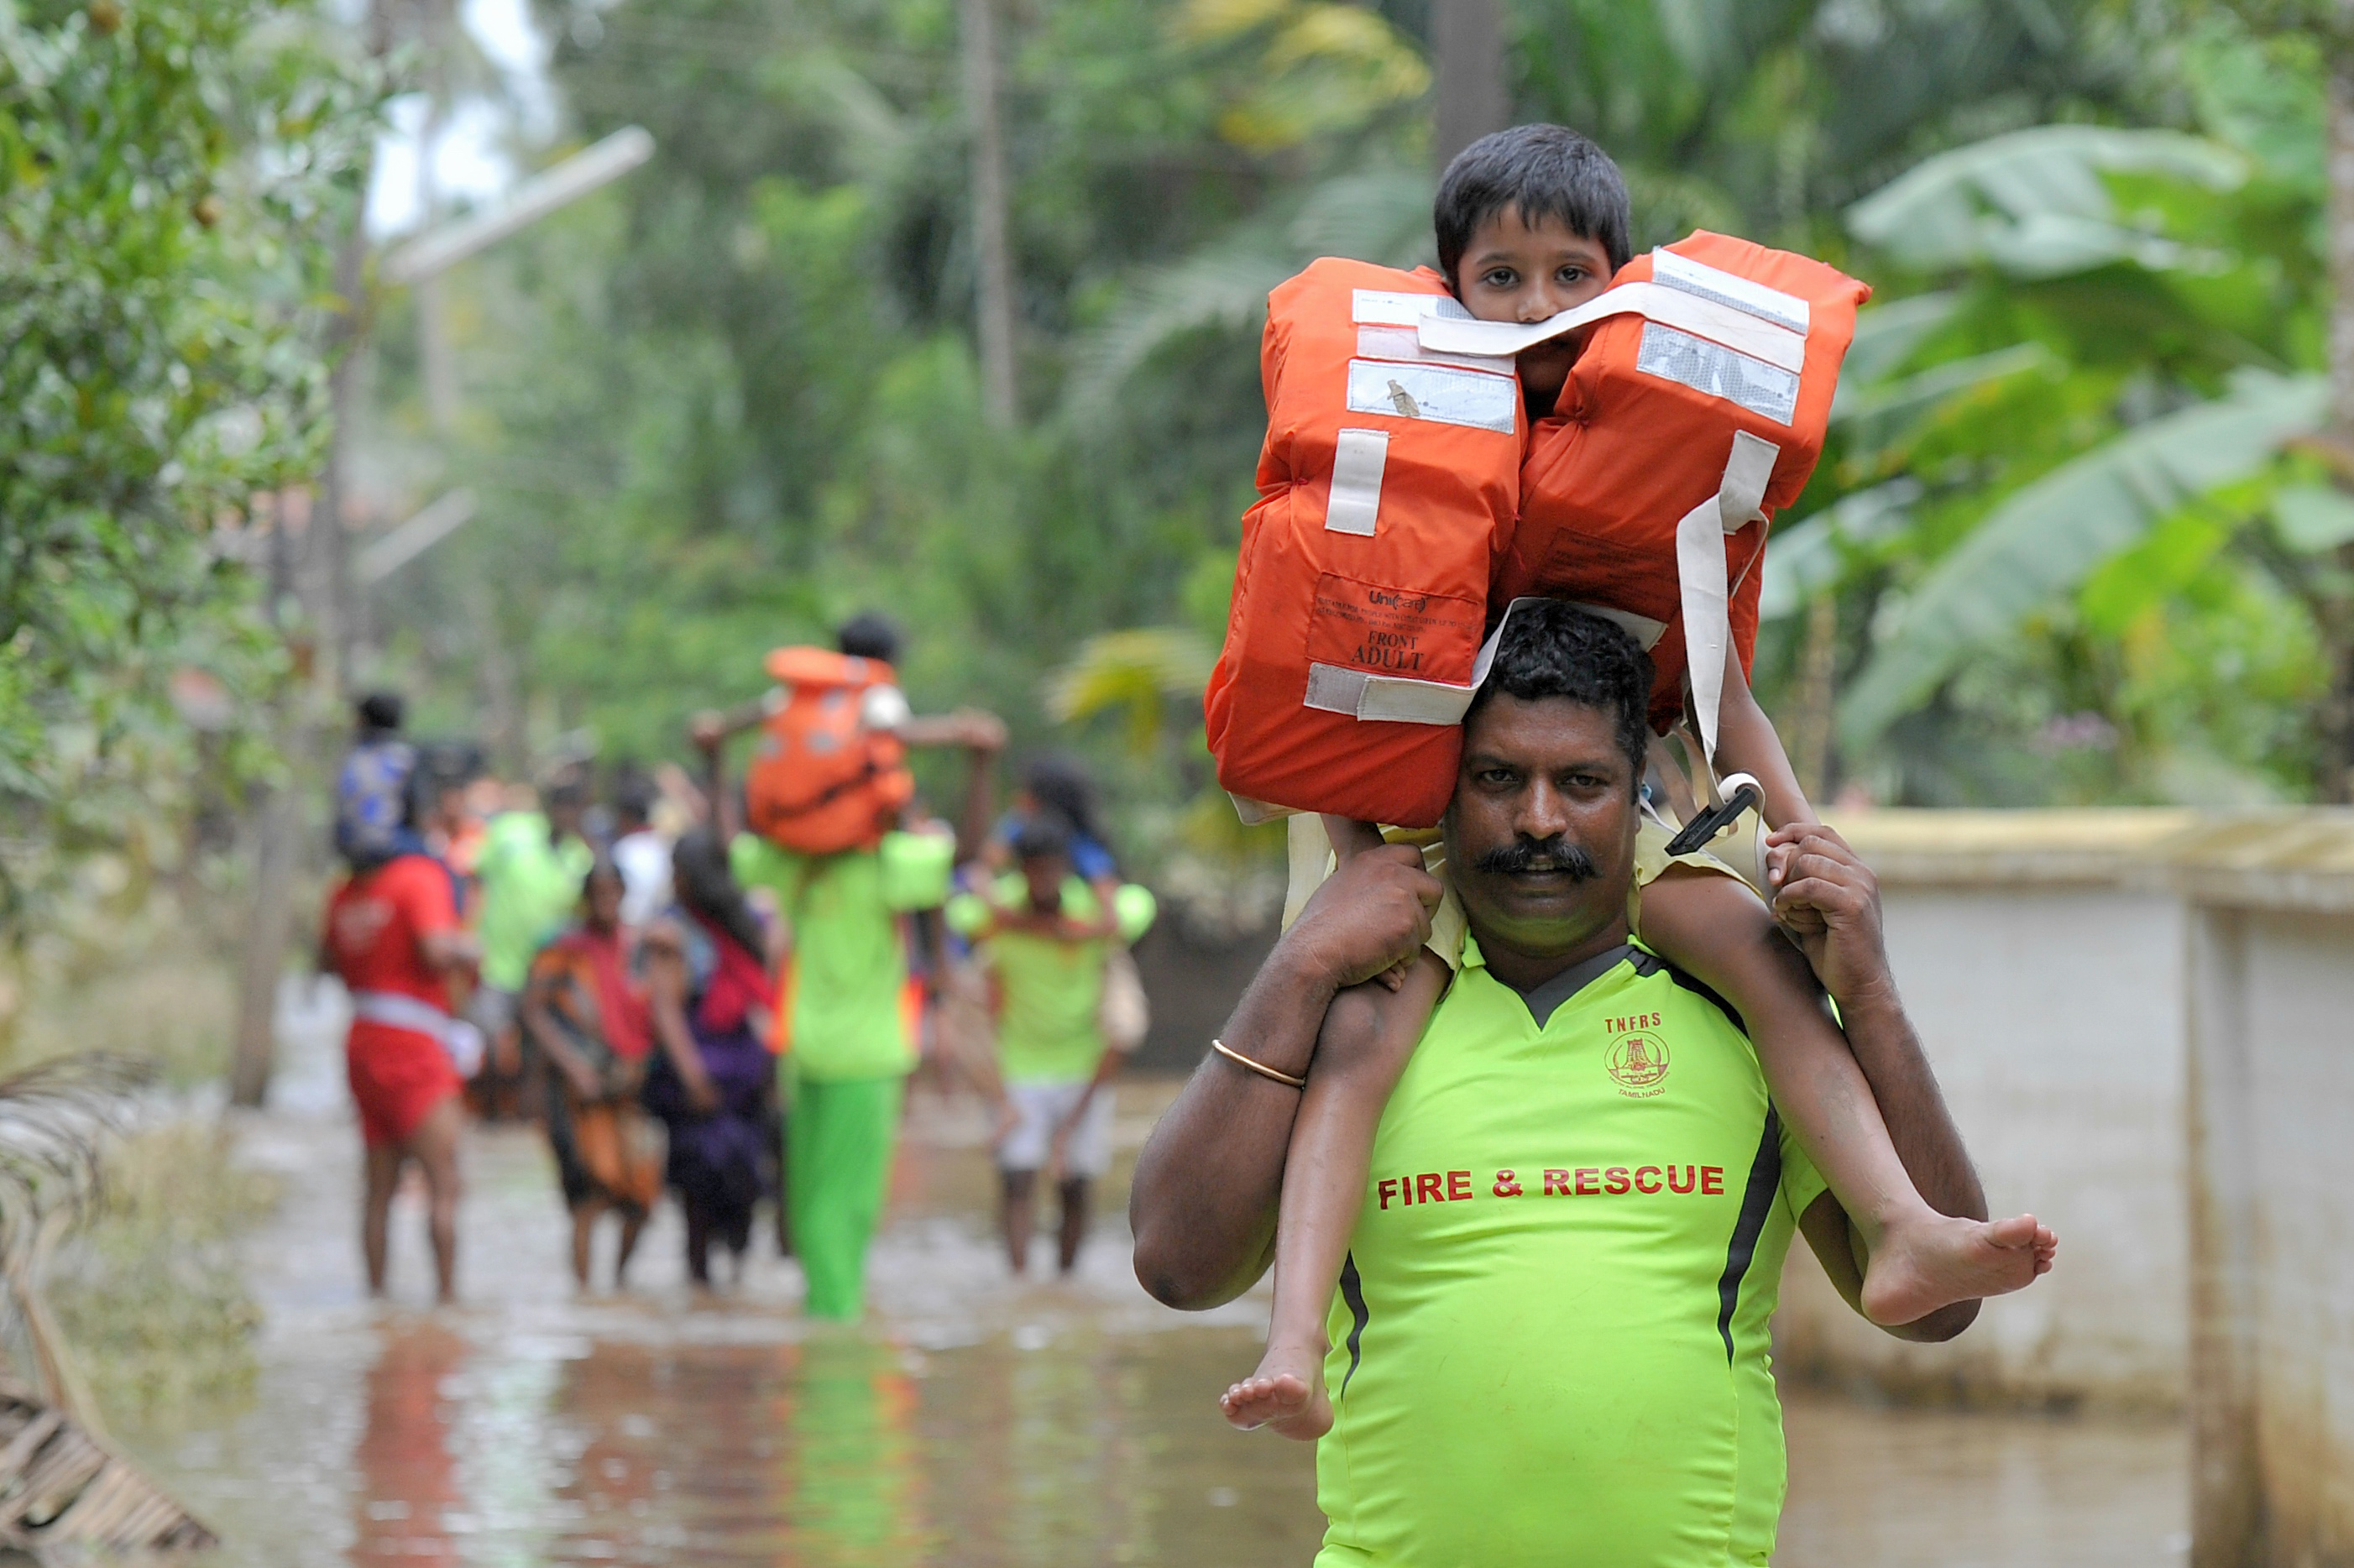 Kerala and Tamil Nadu Fire Force personnel carry children on their shoulders through flood waters during a rescue operation in Annamanada village in Thrissur District, in the south Indian state of Kerala, on Aug. 19, 2018.